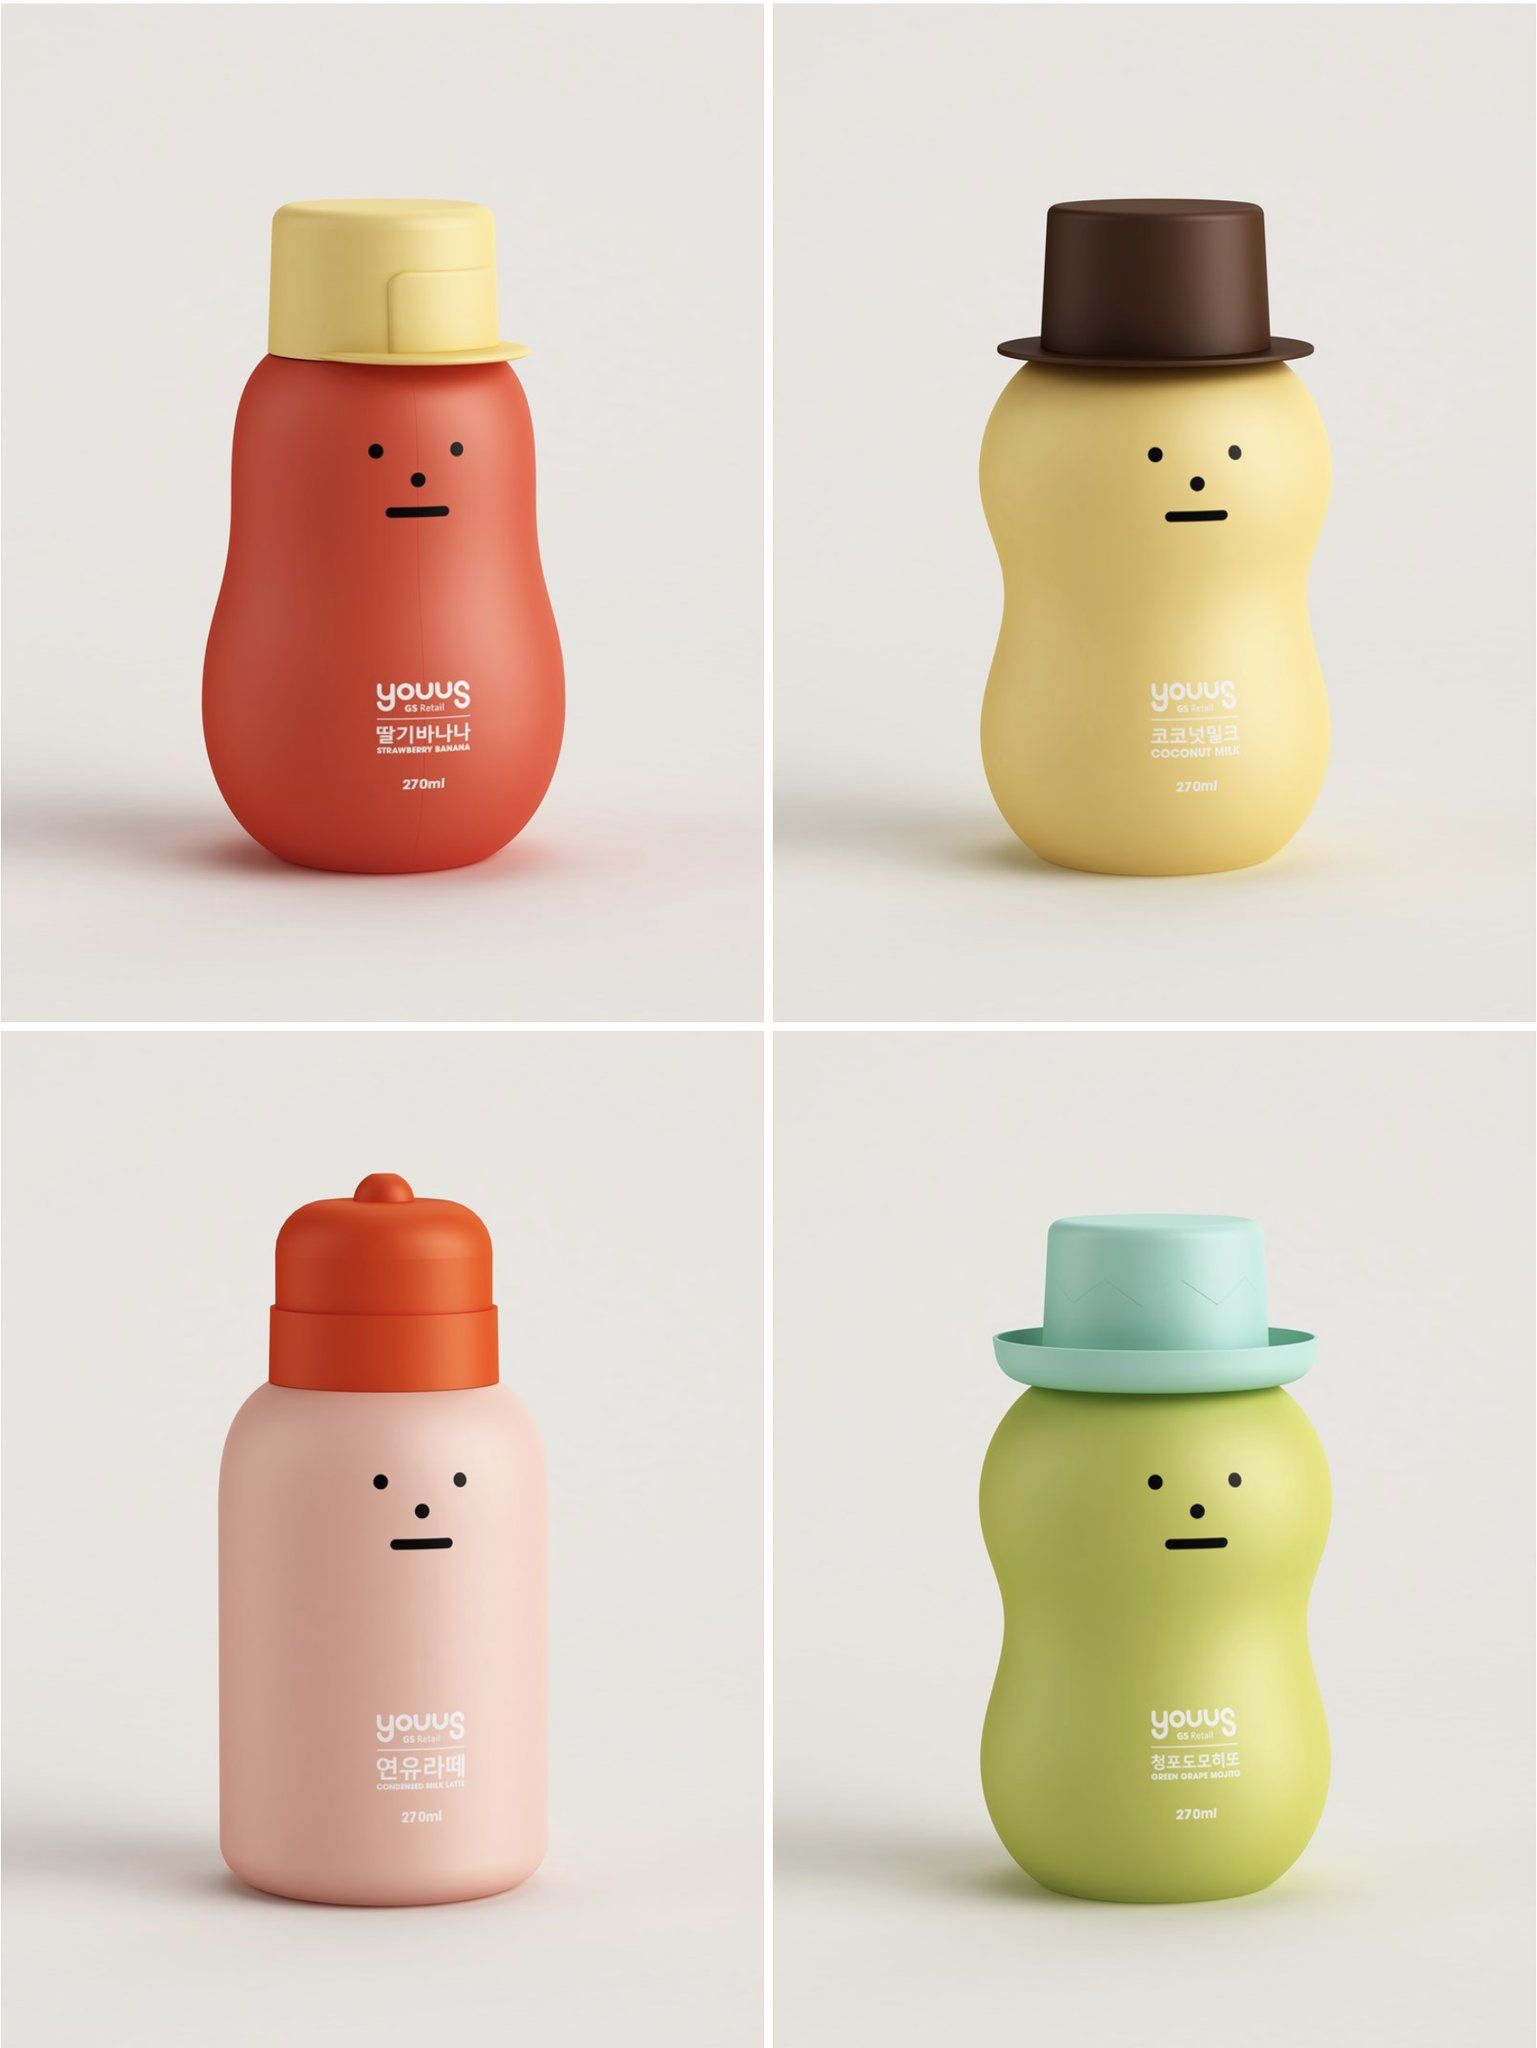 Youus Drink Packaging